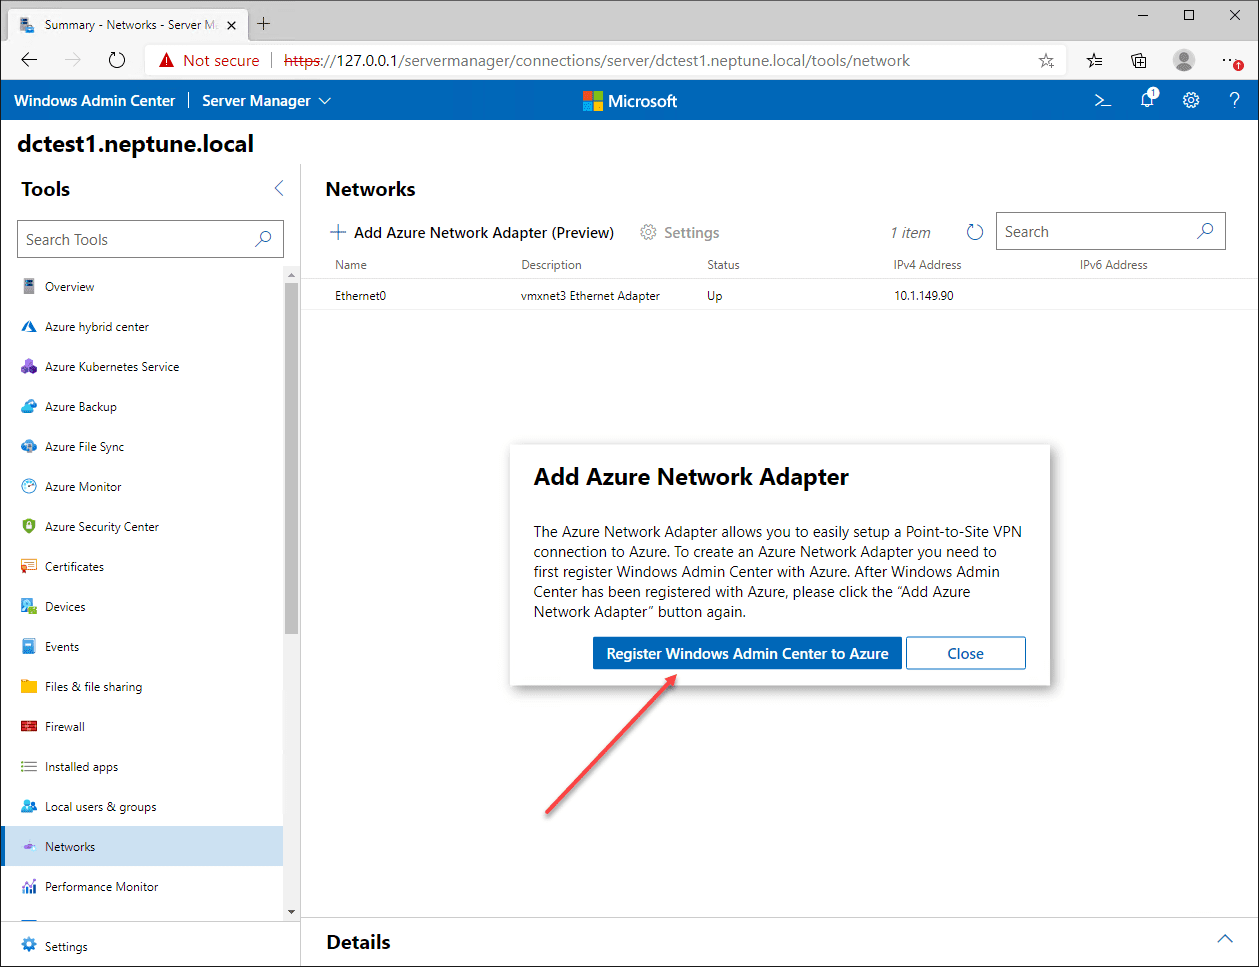 Prompt to register Windows Admin Center to Azure environment